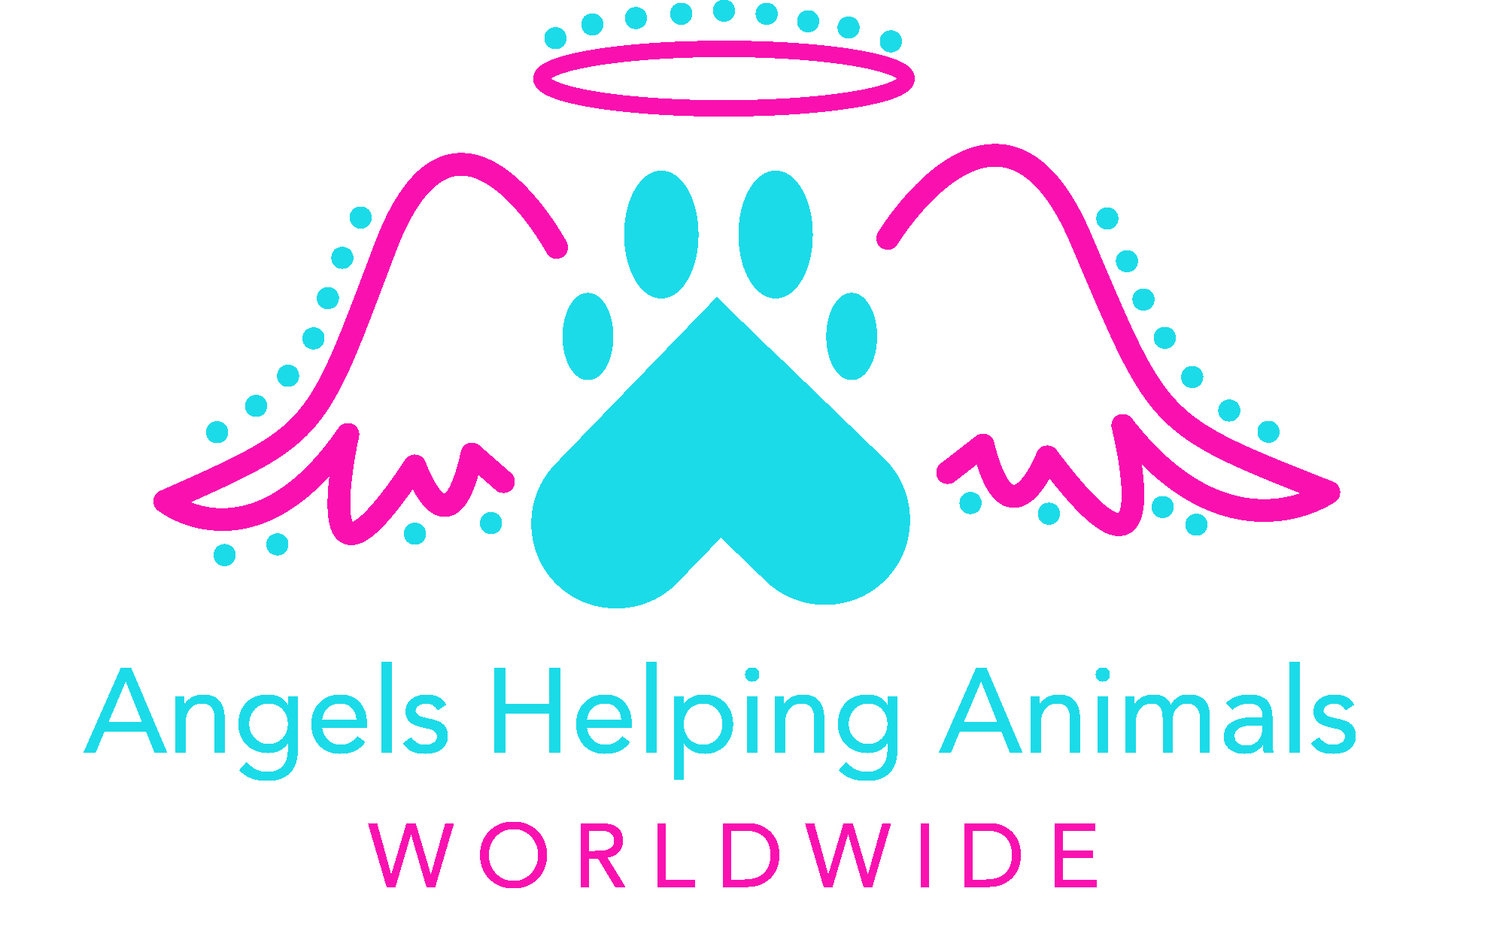 Angels Helping Animals Worldwide - Martha's Vineyard